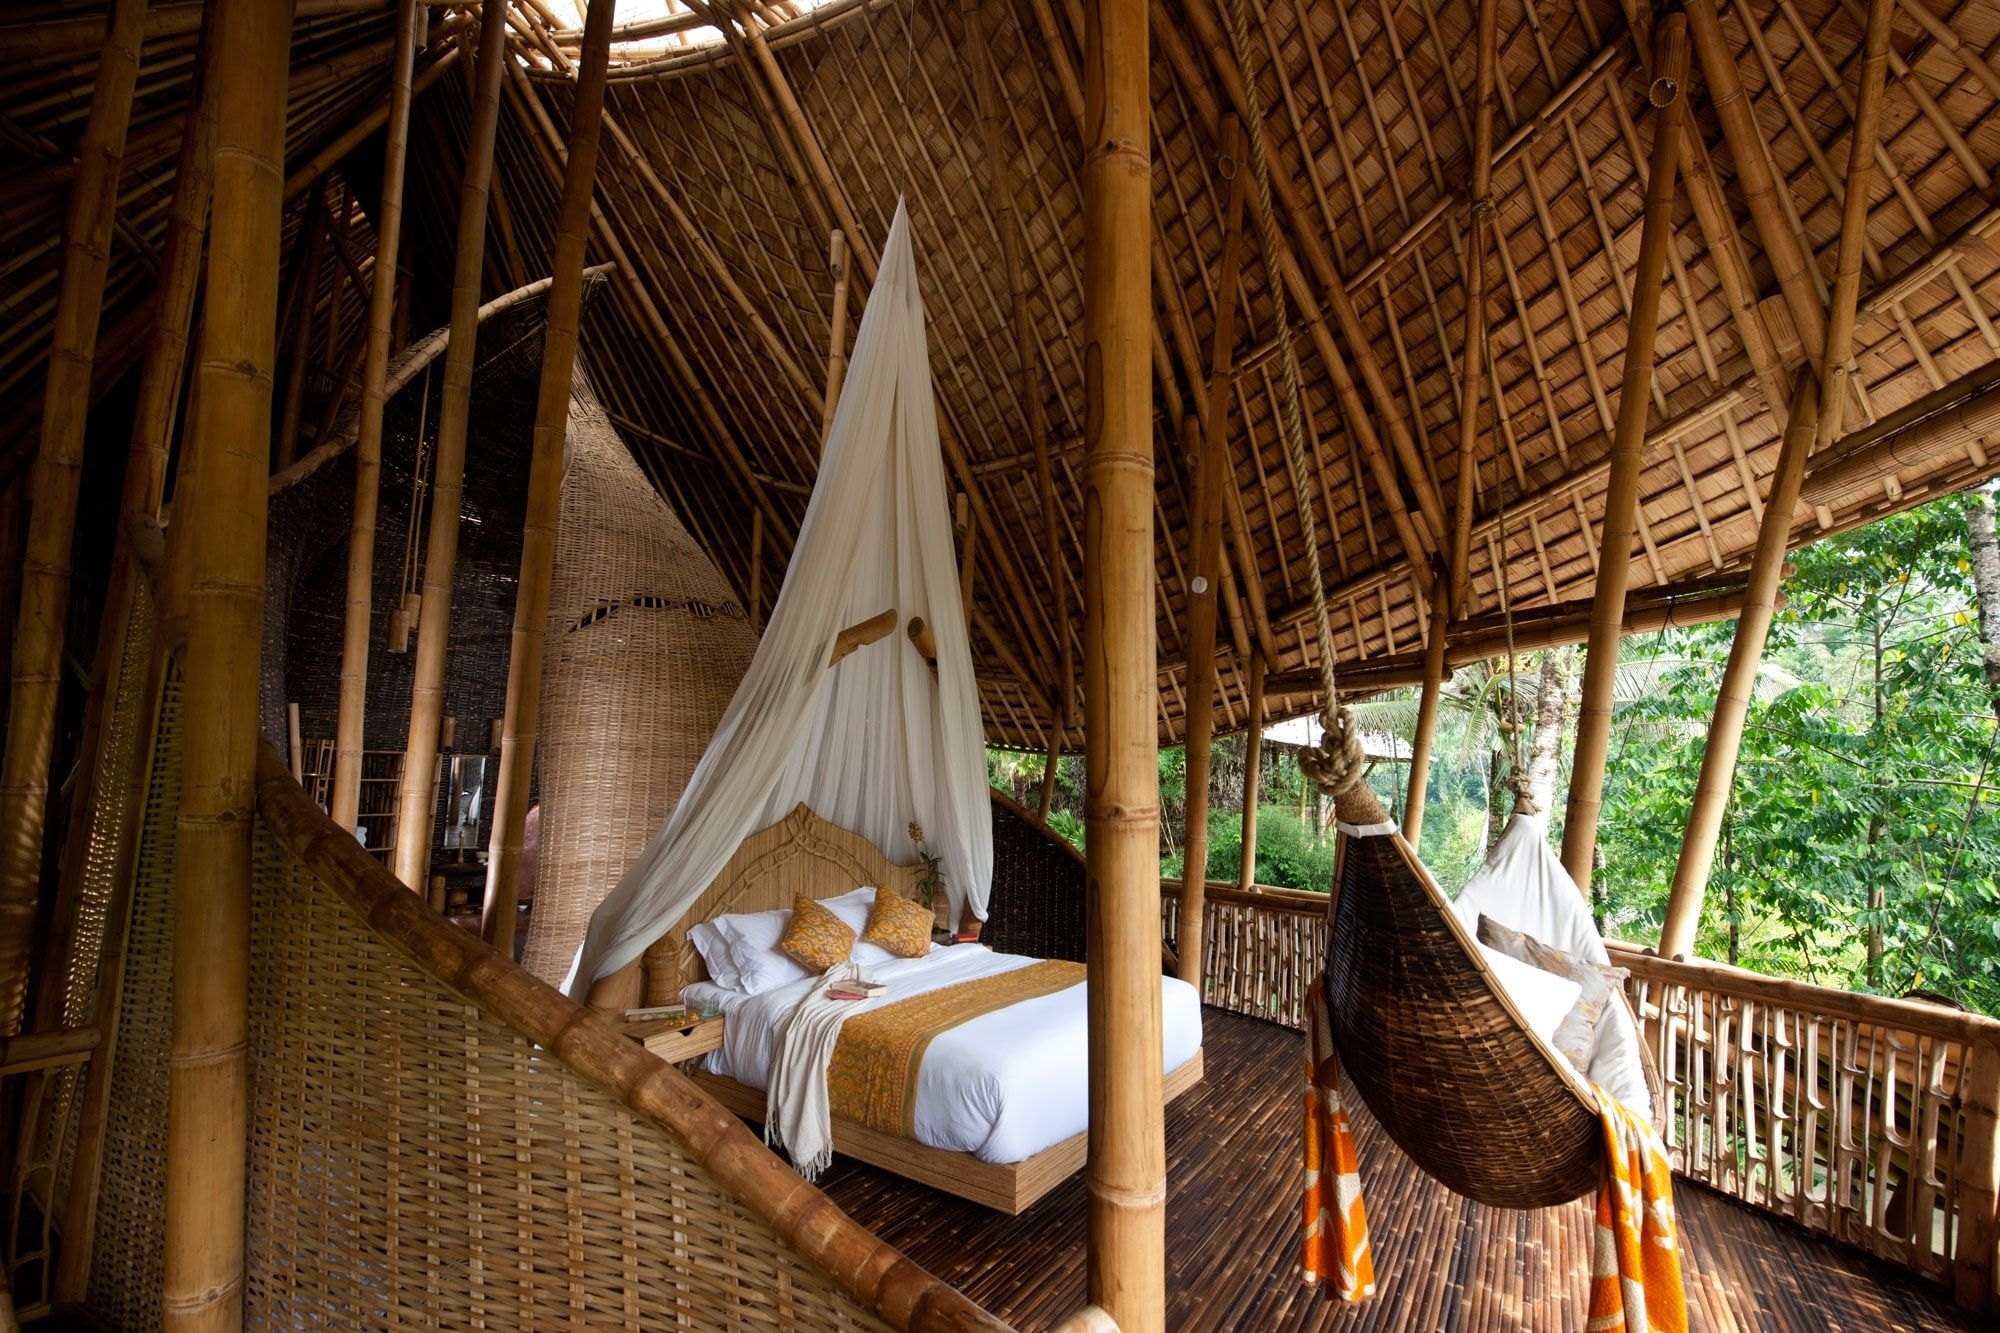 The Green Village River House Bali Indonesia Ibuku River House Bali House Bamboo Building